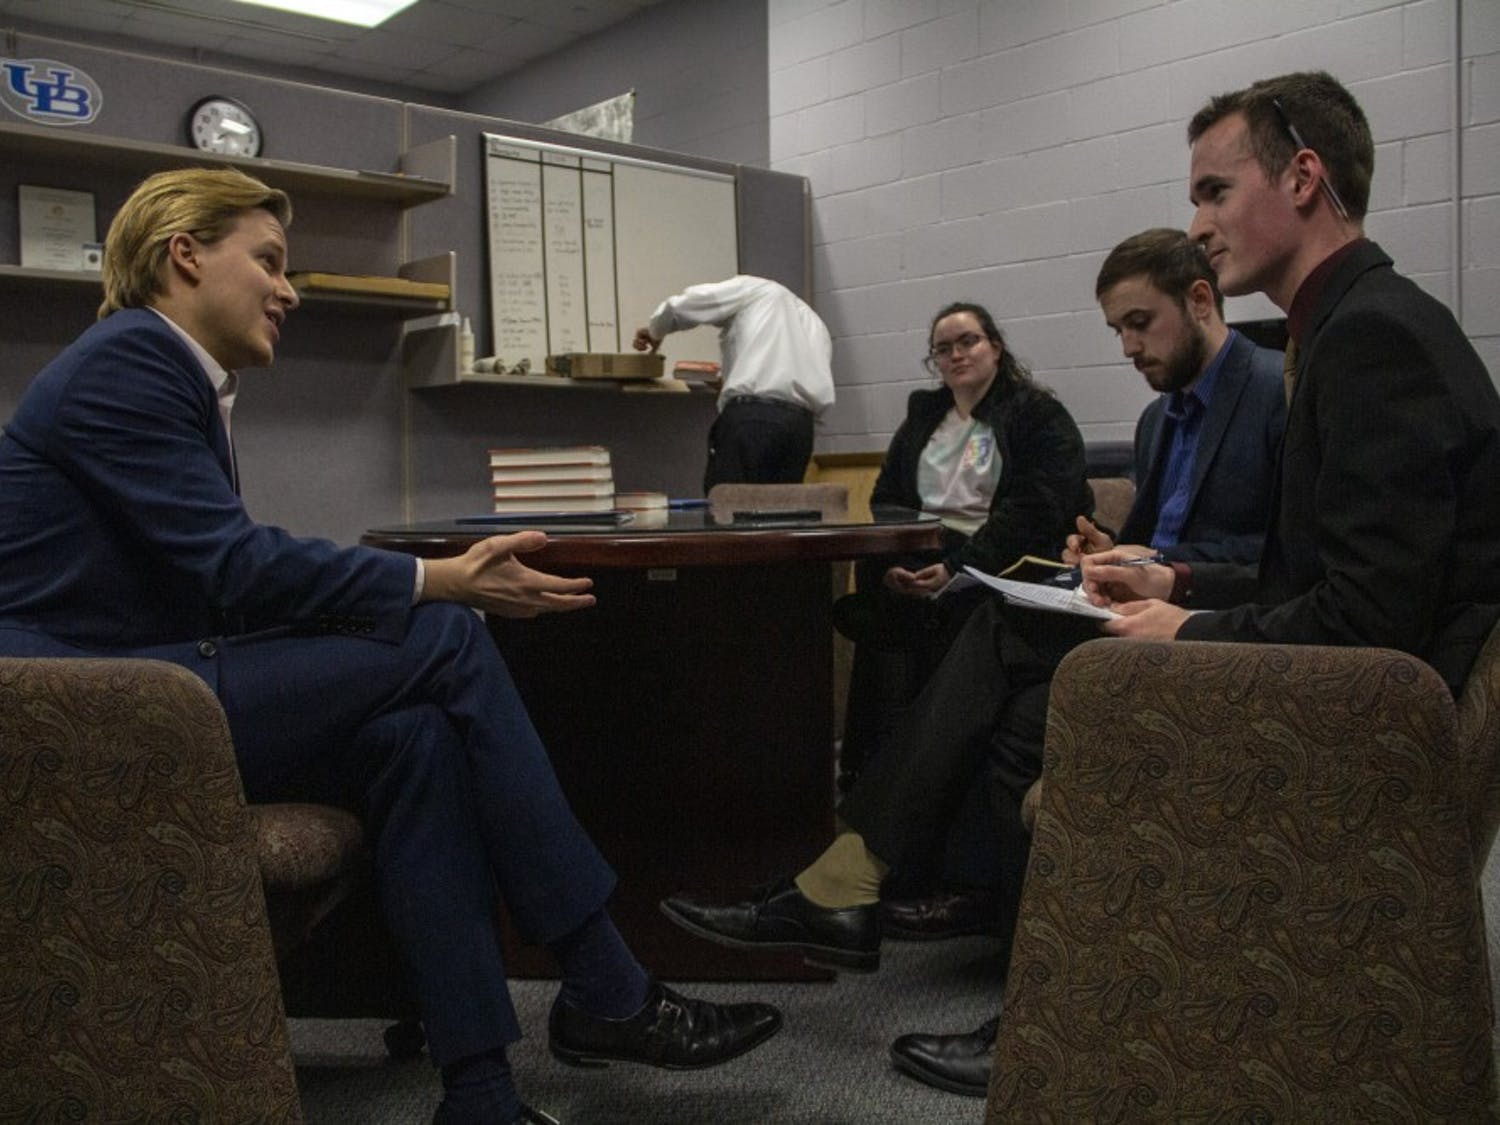 Spectrum editors sat down with Pulitzer Prize-winning journalist Ronan Farrow ahead of his Distinguished Speaker Lectures.